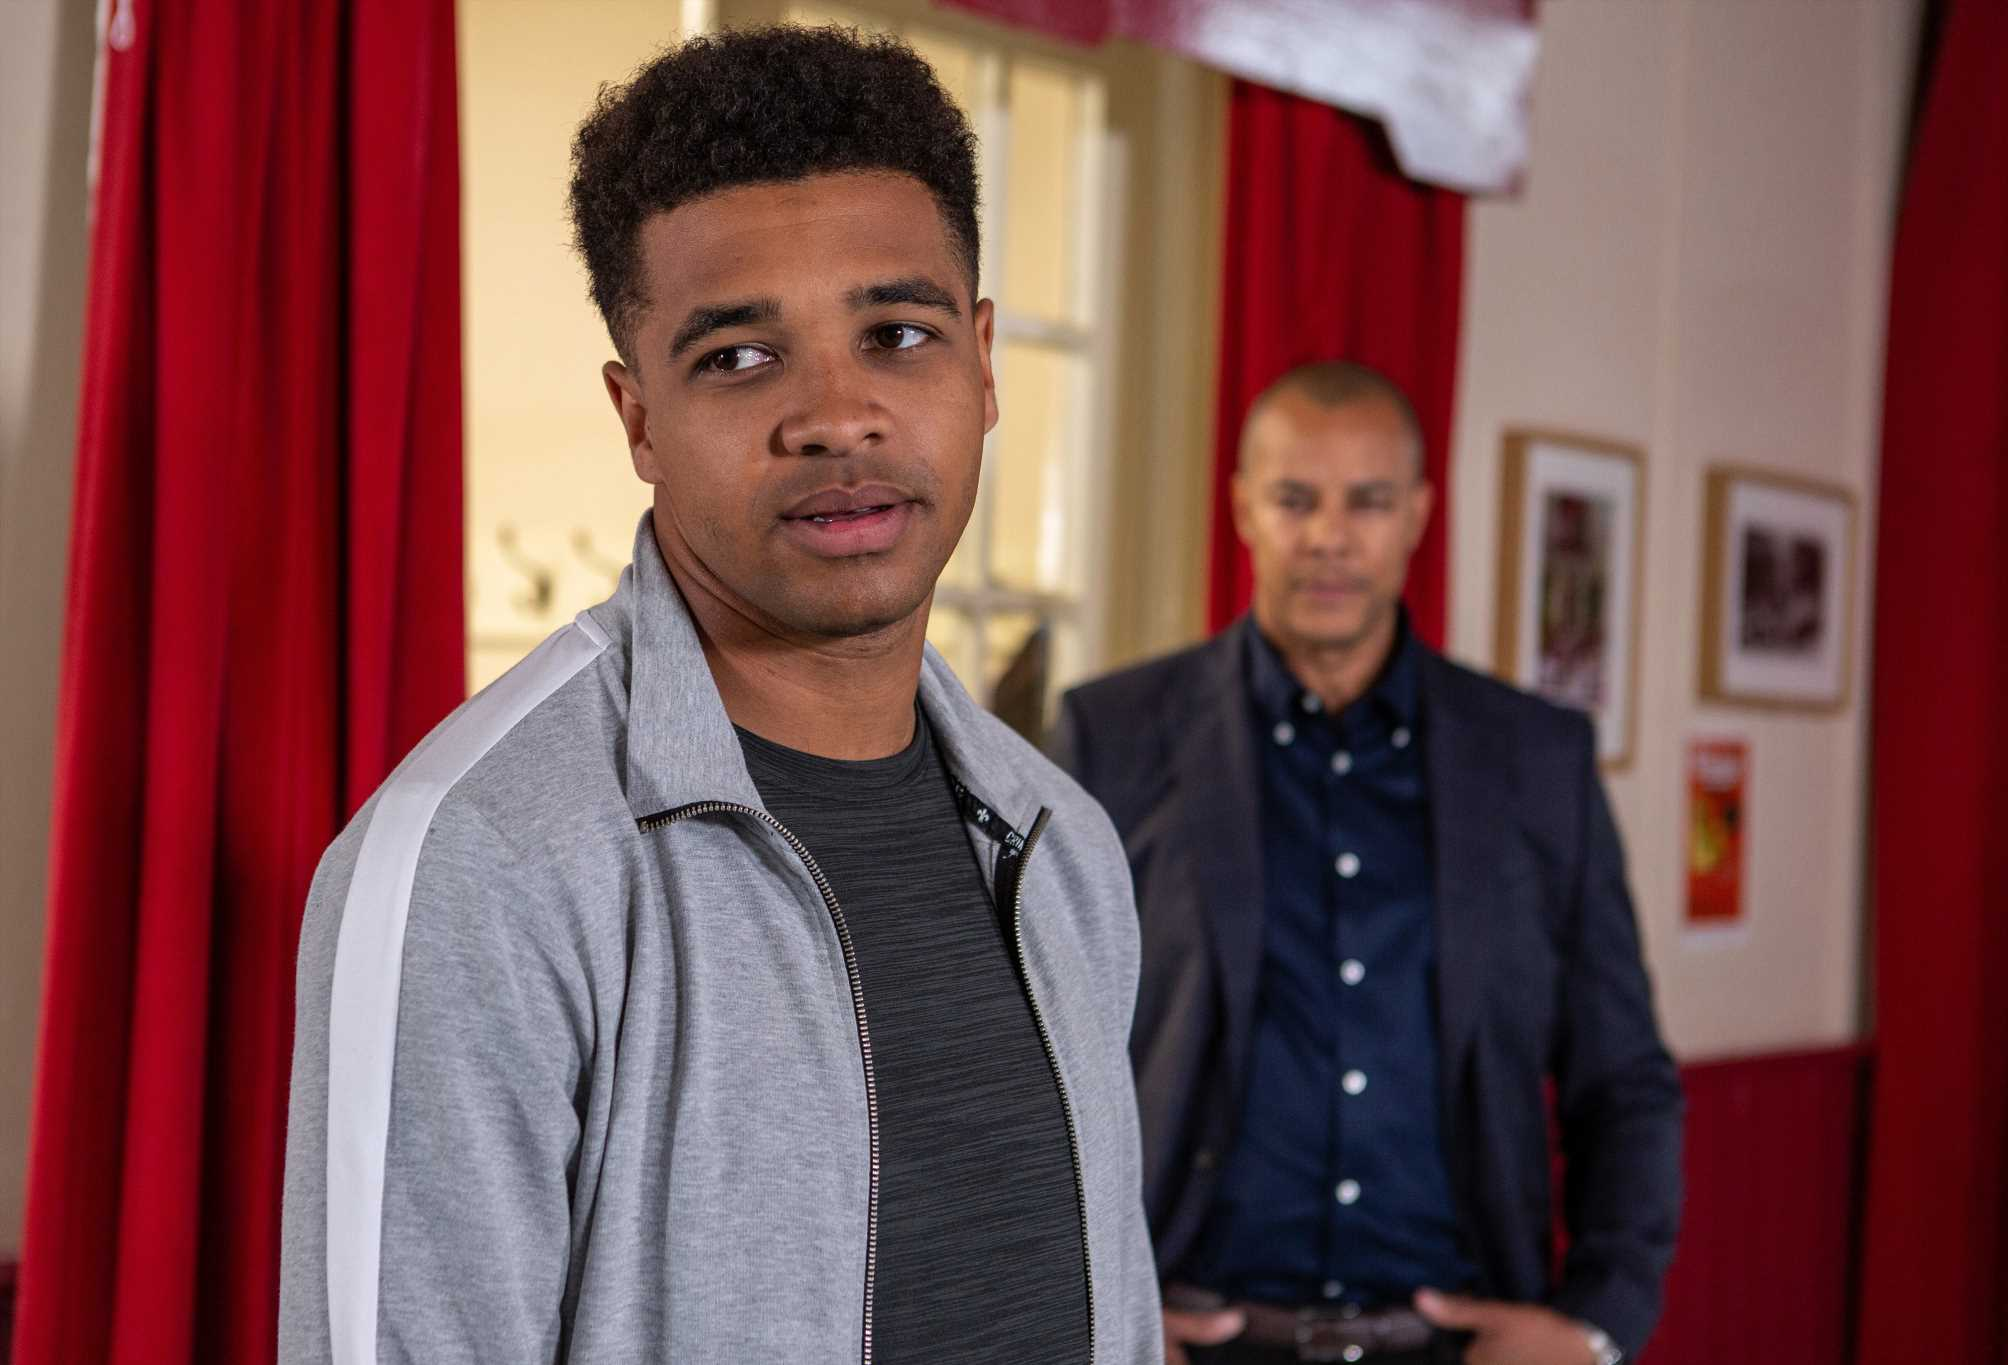 Emmerdale fans confused after Asan N'Jie didn't appear in tonight's episode hours after soap axe